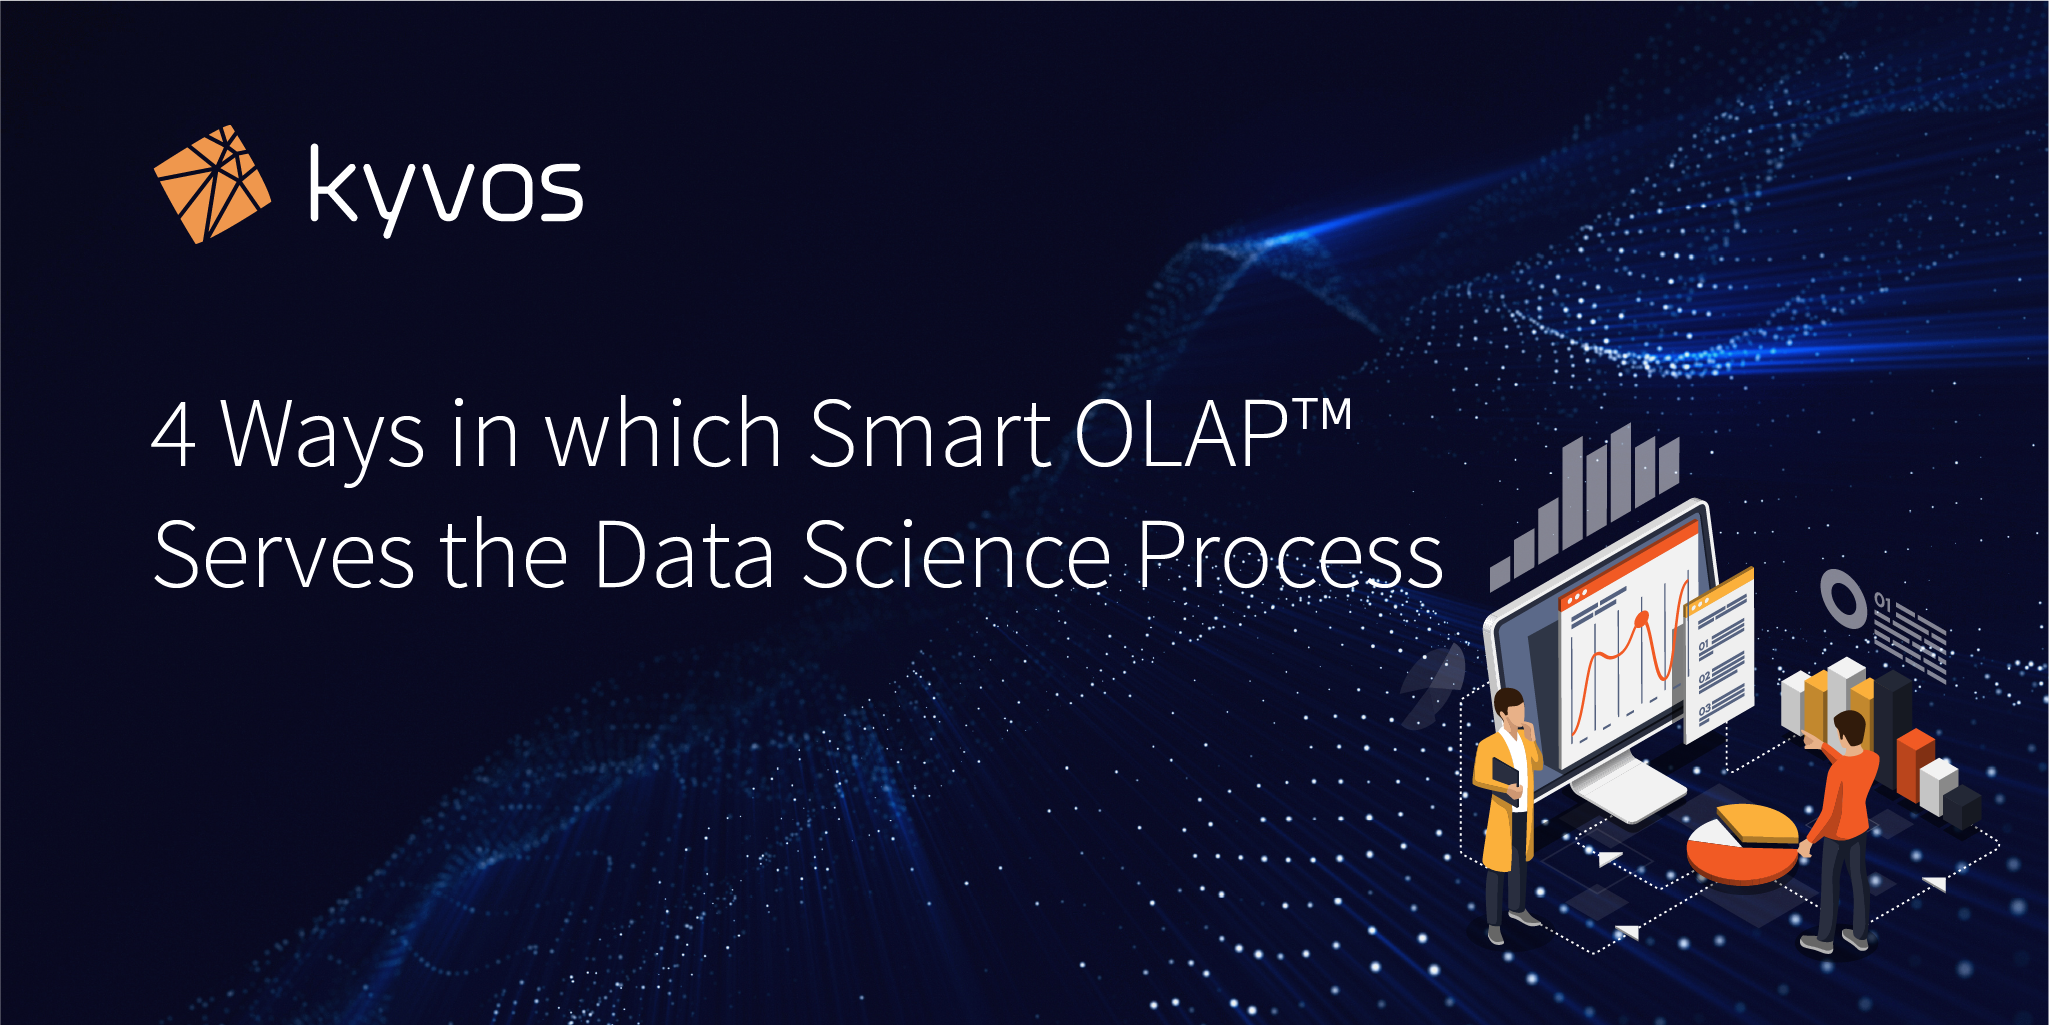 4 Ways in which Smart OLAP™ Serves the Data Science Process